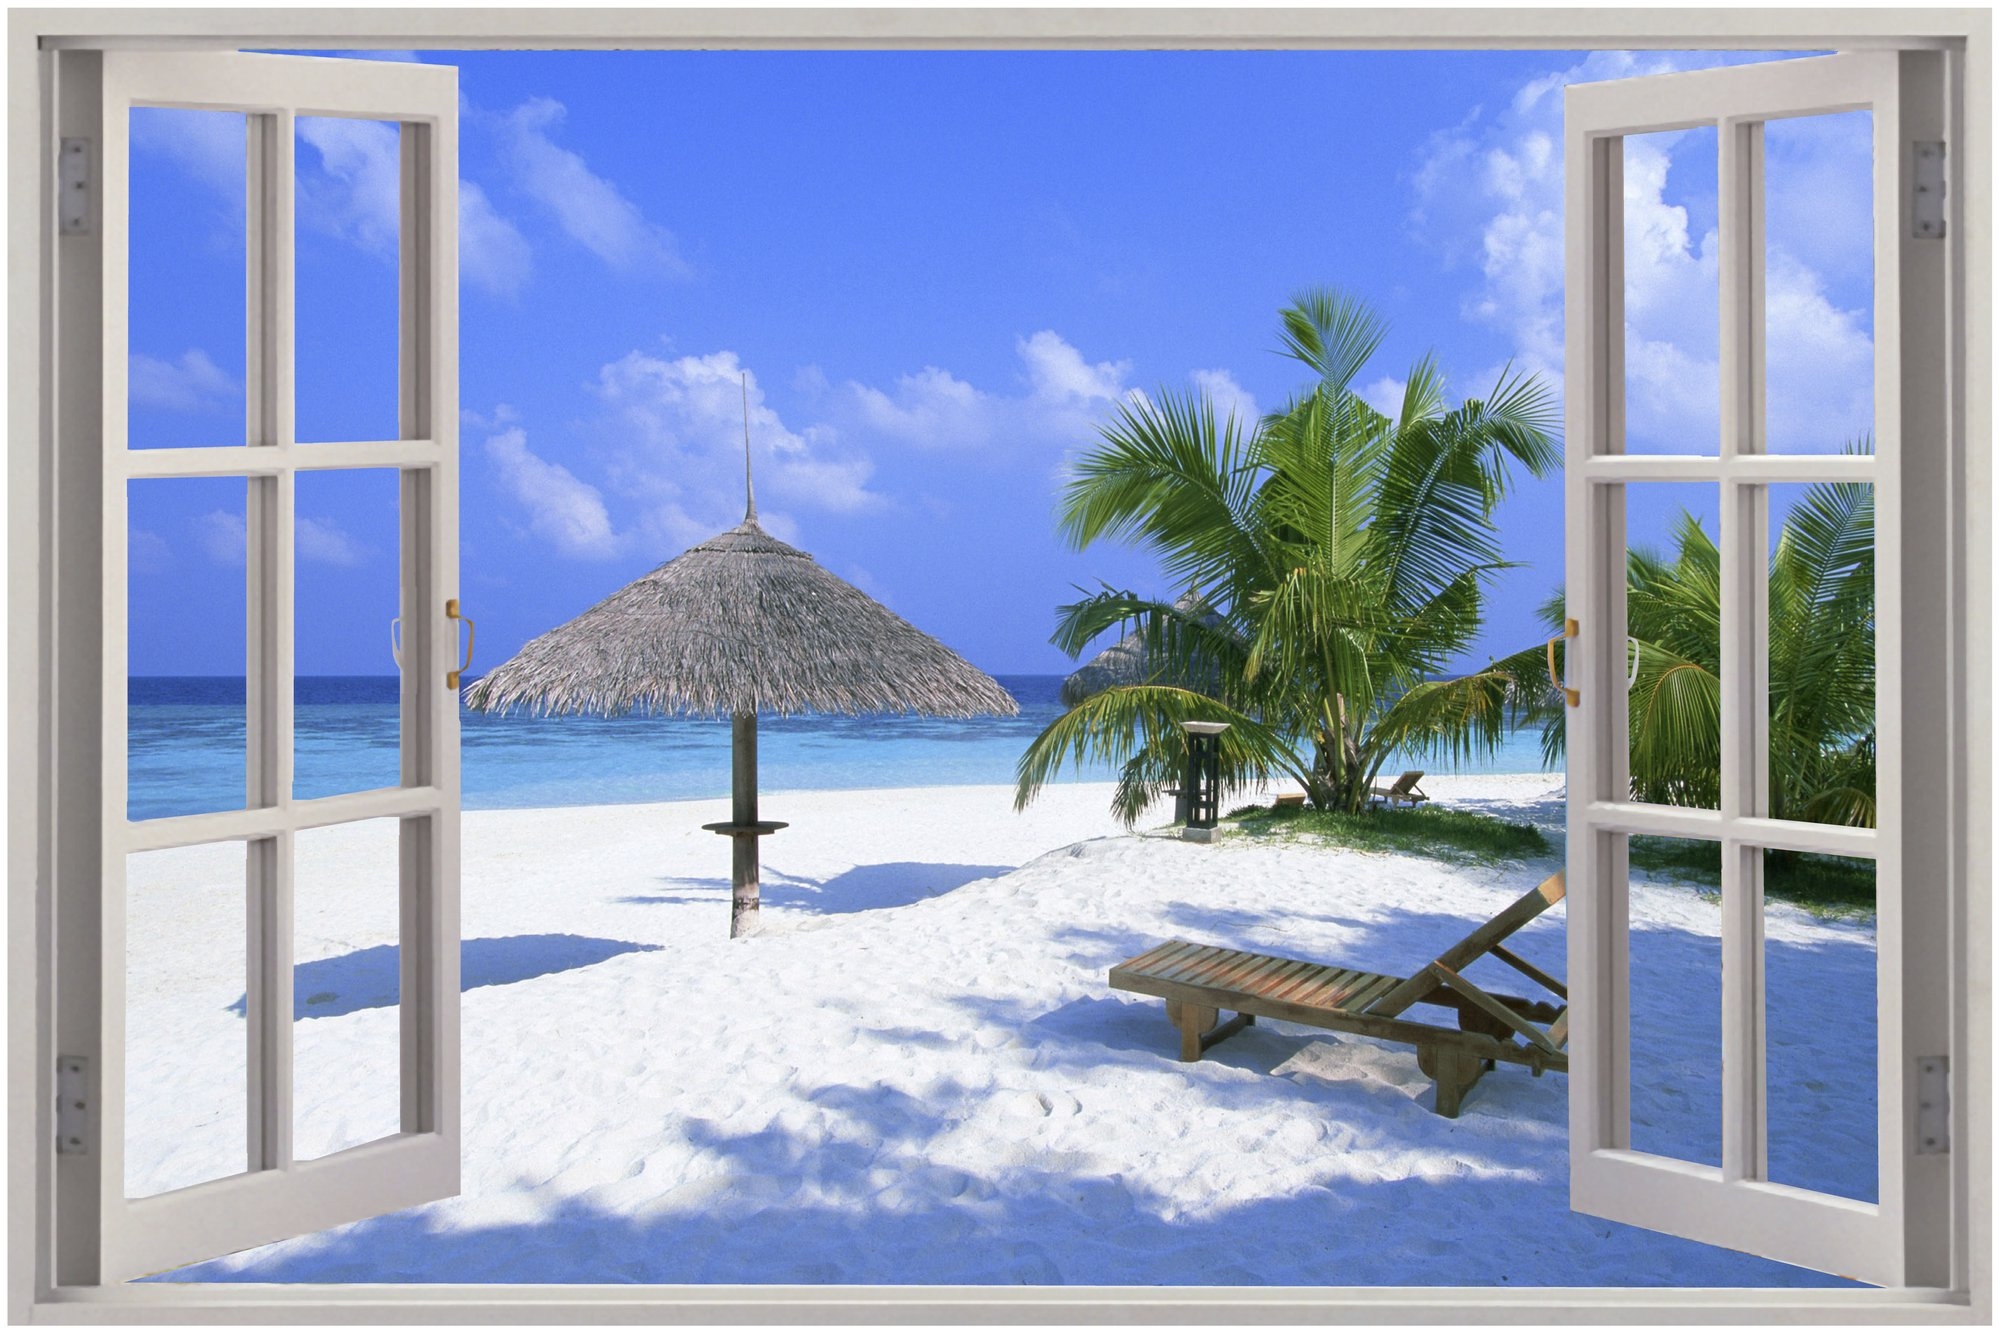 Beach window wallpaper wallpapersafari for Window wall